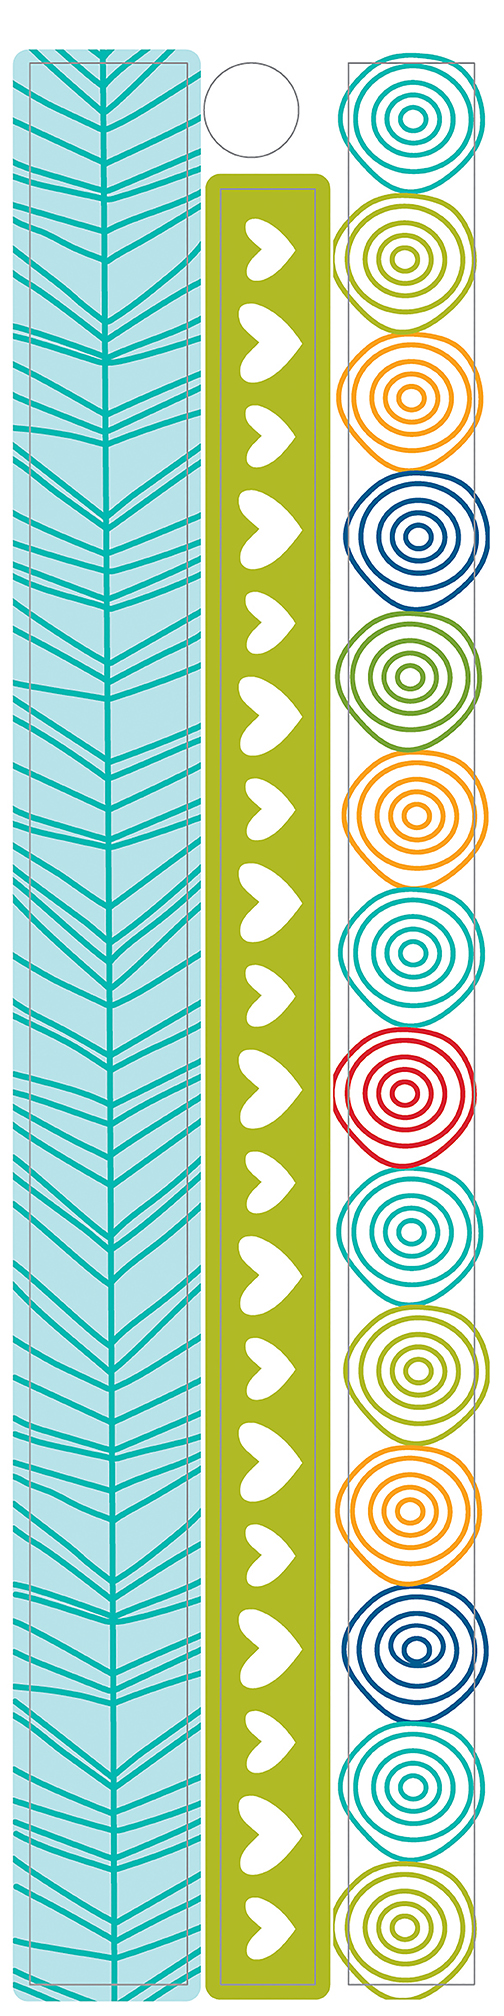 1350_WASHI_STICKERS_COLORFUL-03